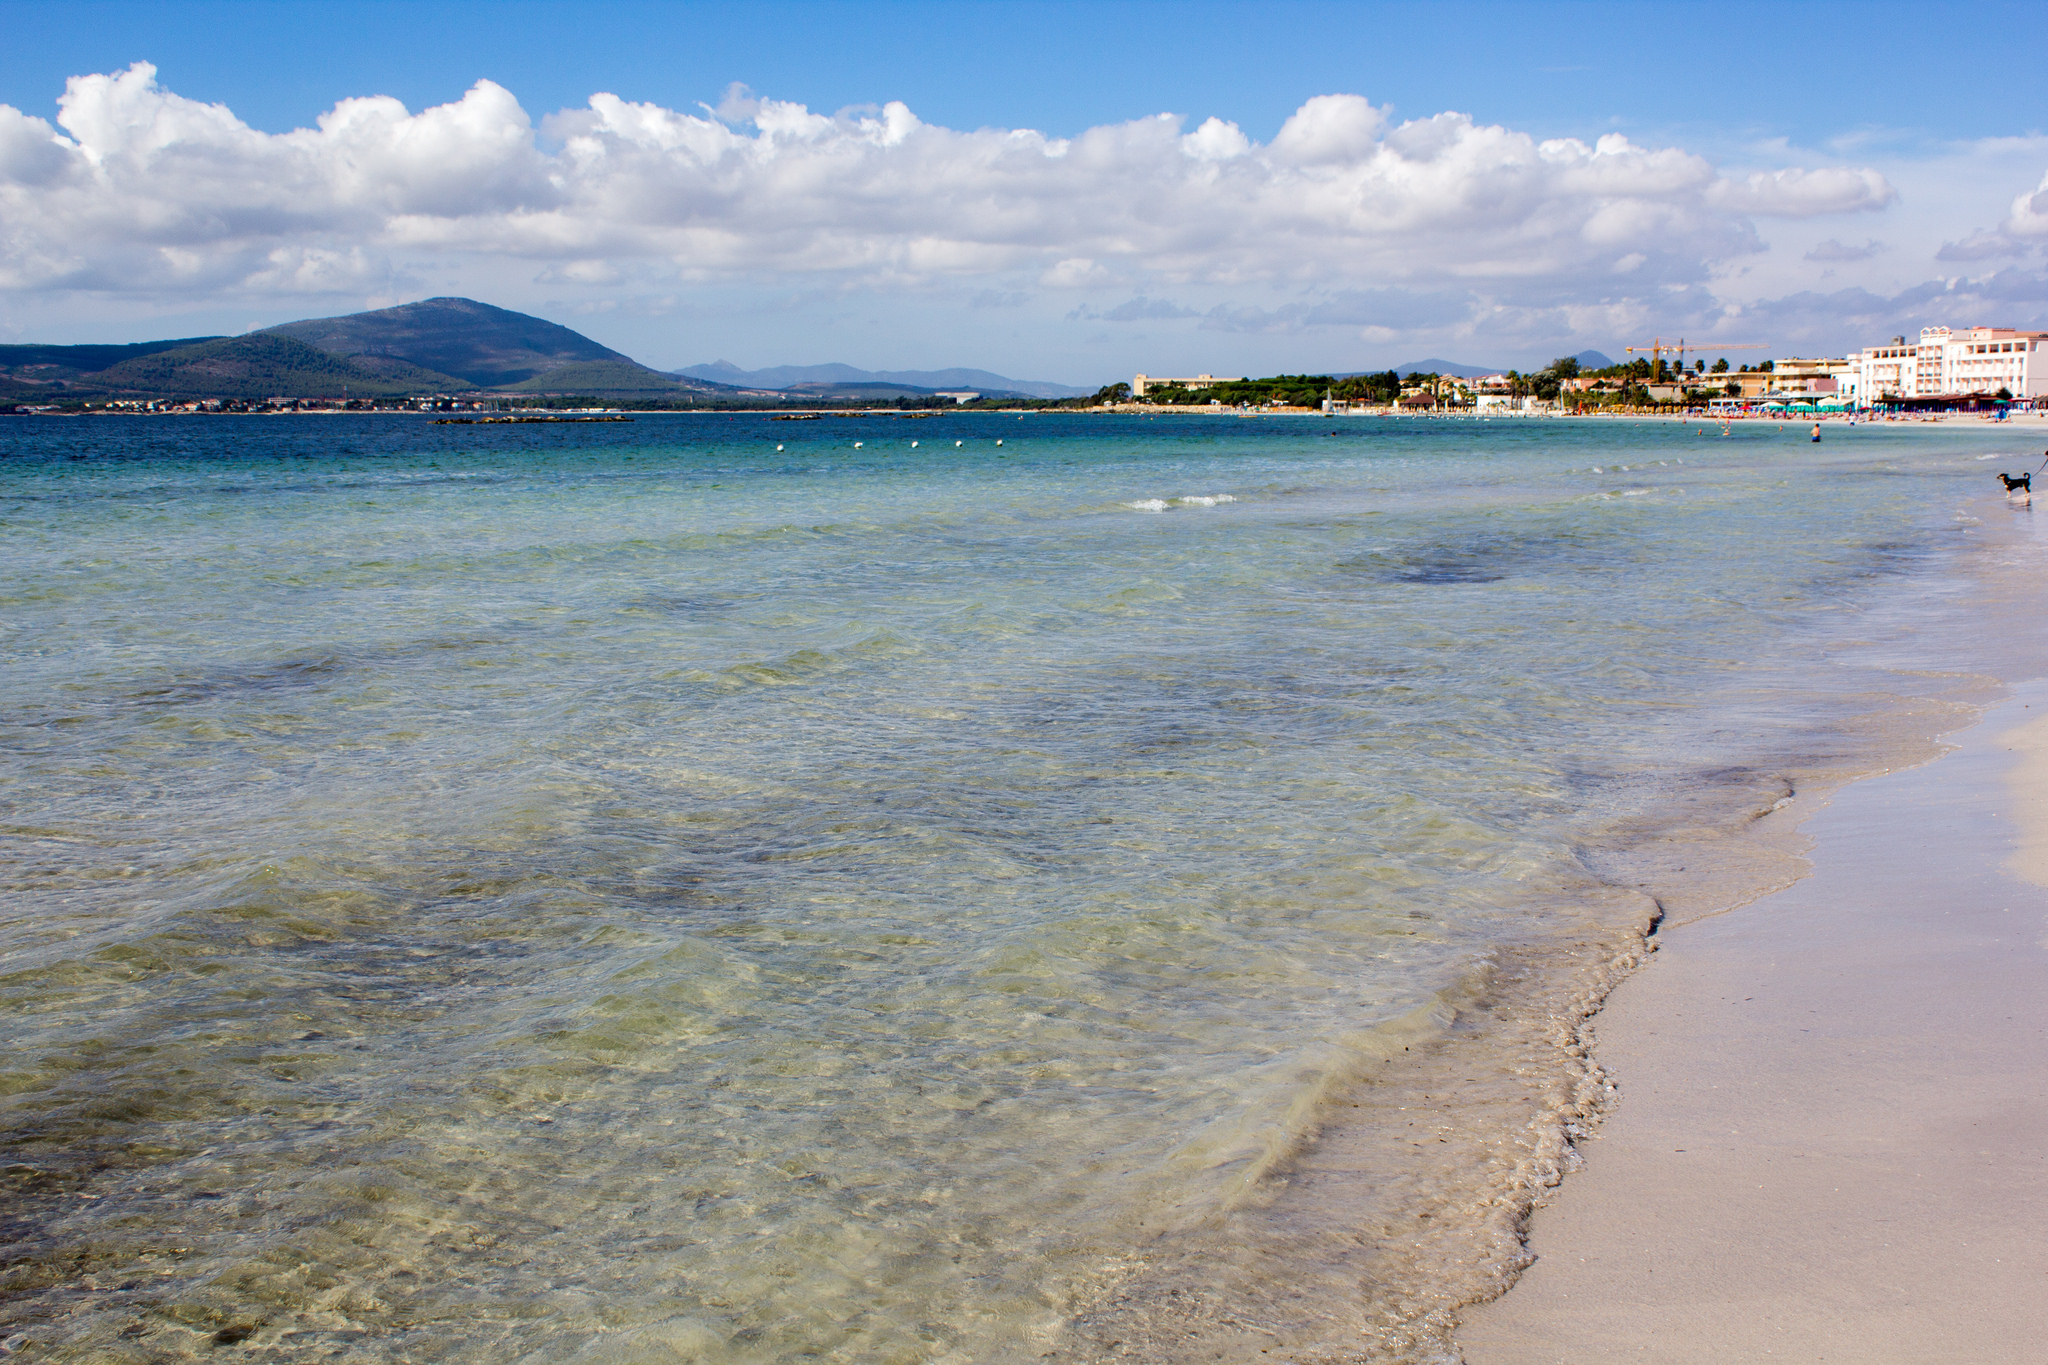 alghero chatrooms Minimum stay: 7 nights for early july - late august, 3 nights for all other dates.